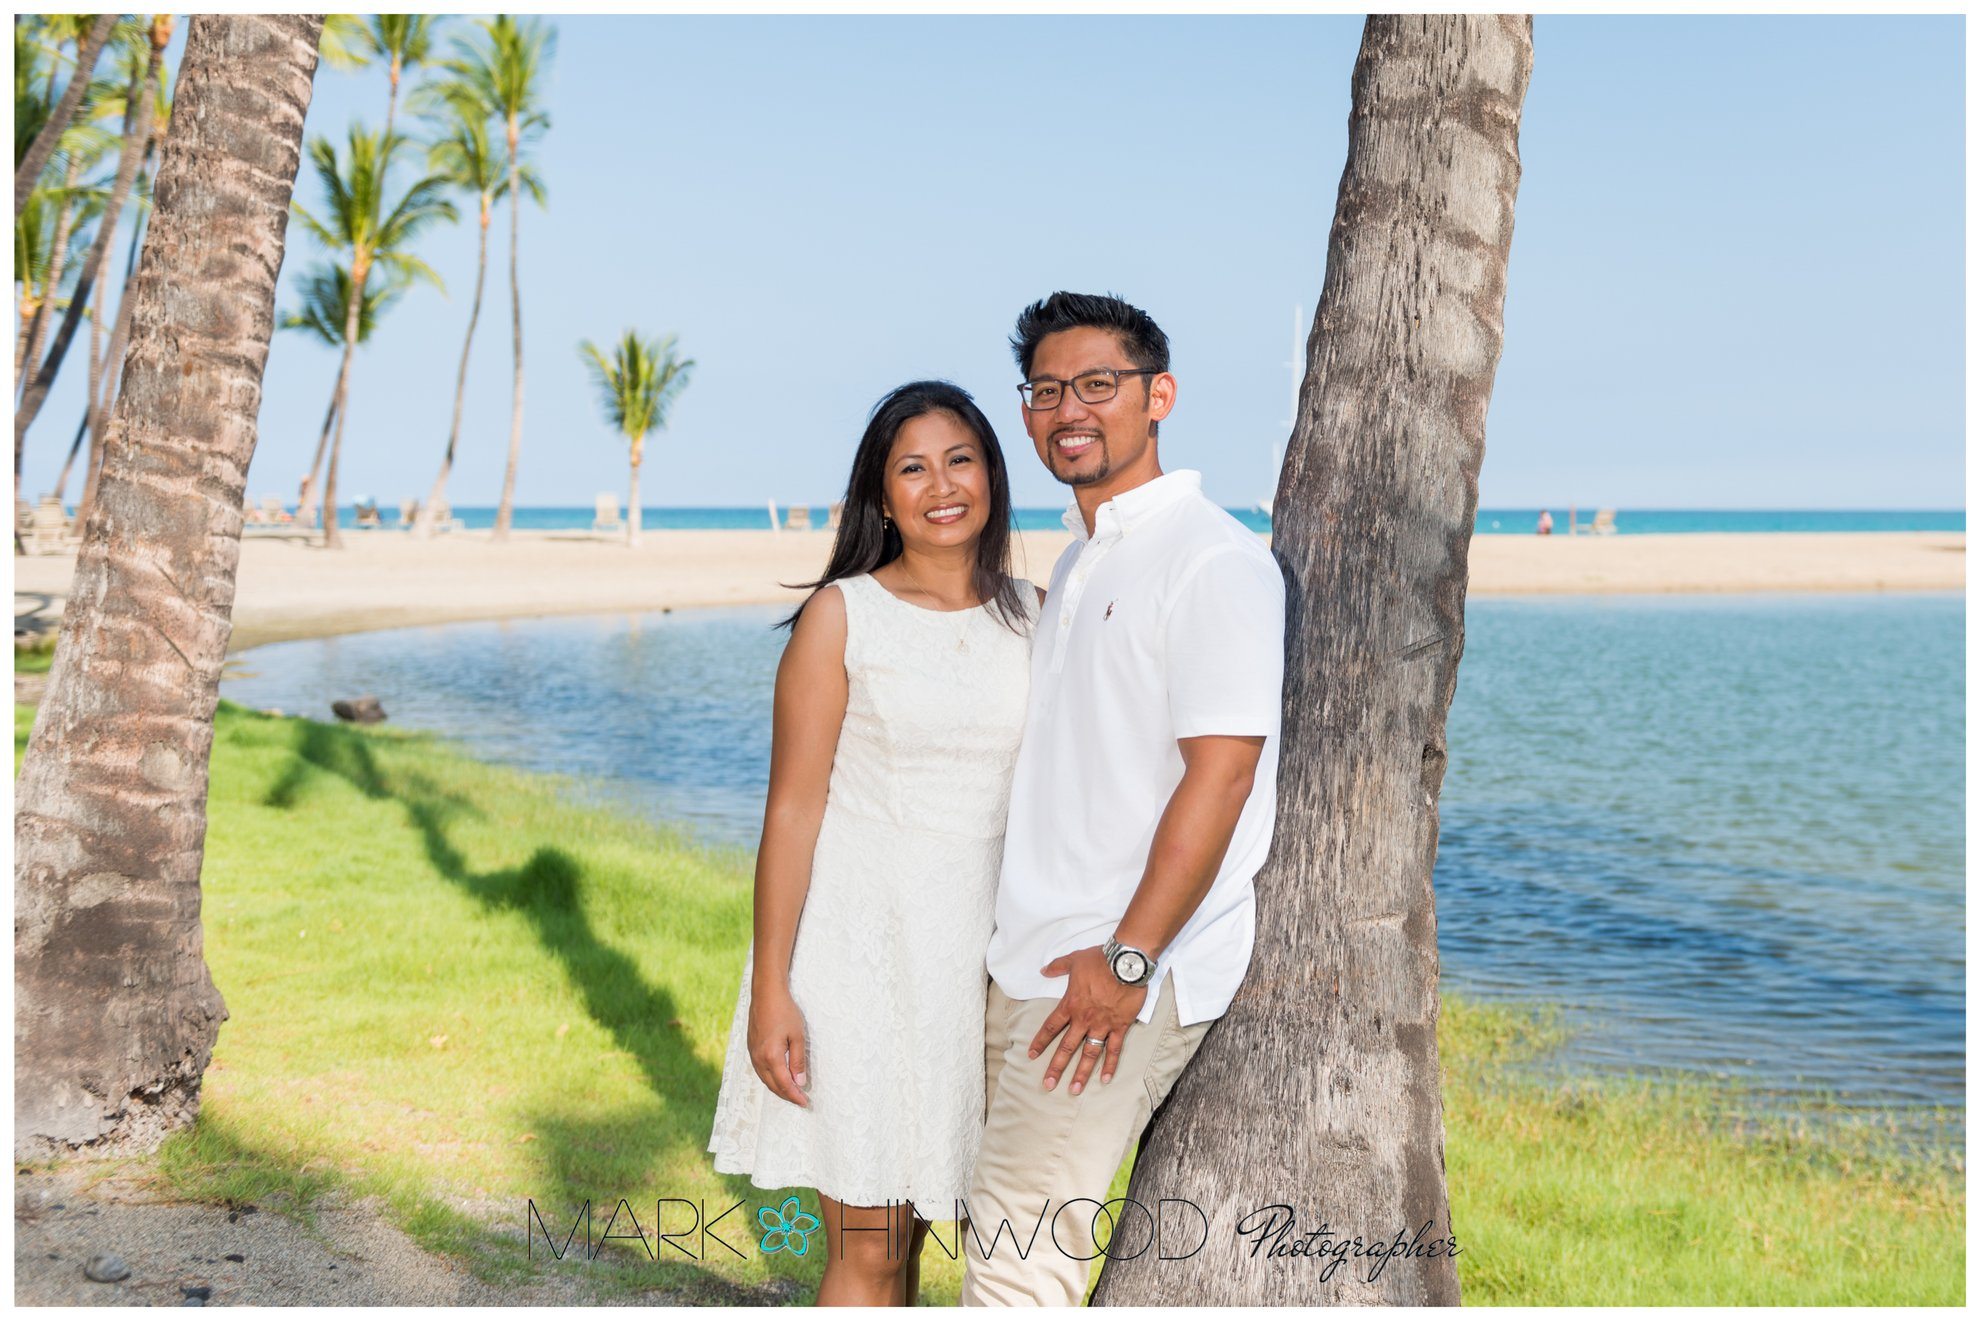 Big Island Hawaii Family Photographer 12